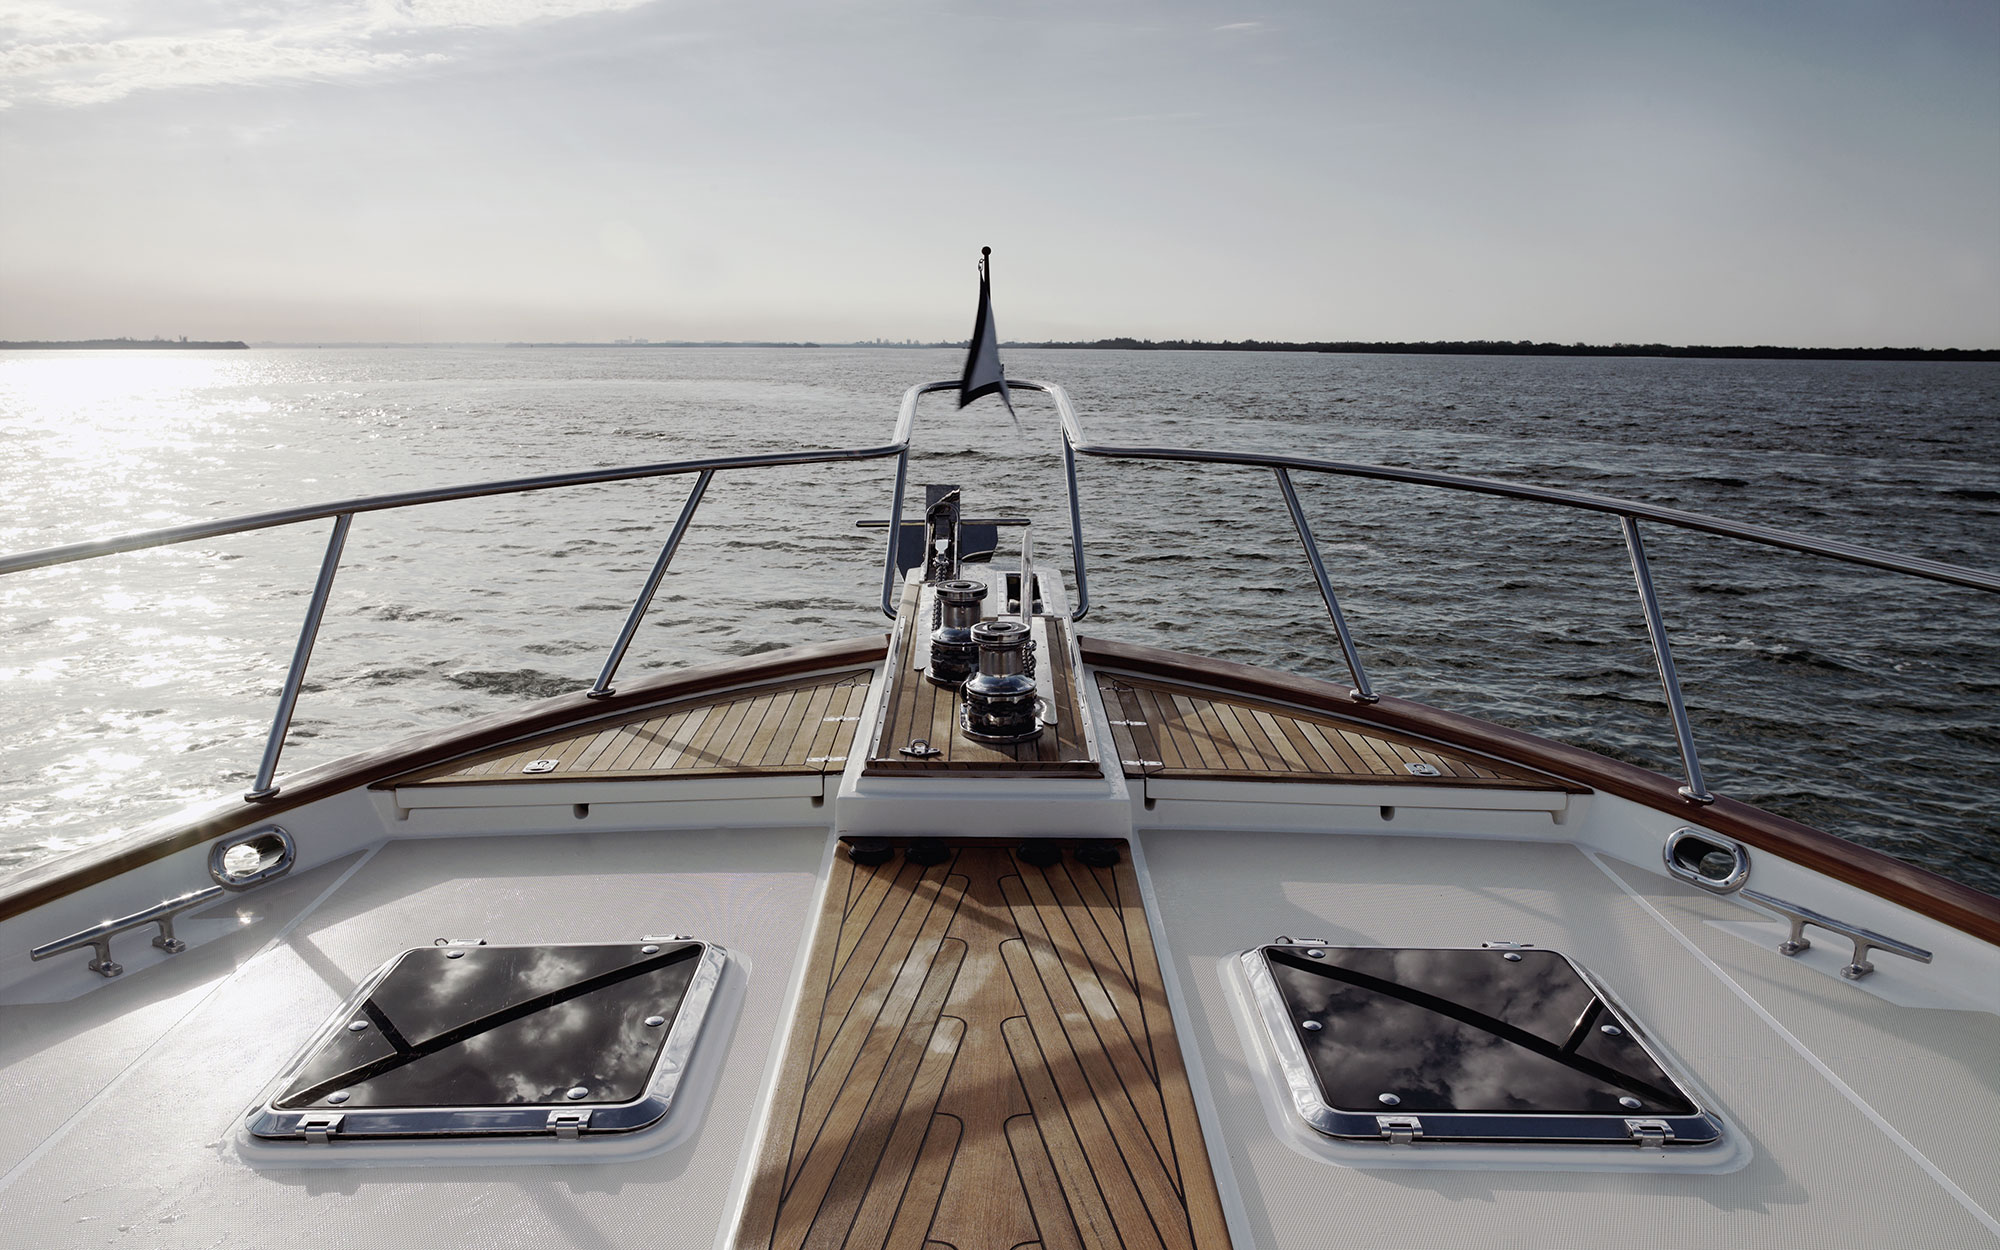 Uber Launches Luxury Yacht Service for Art Basel